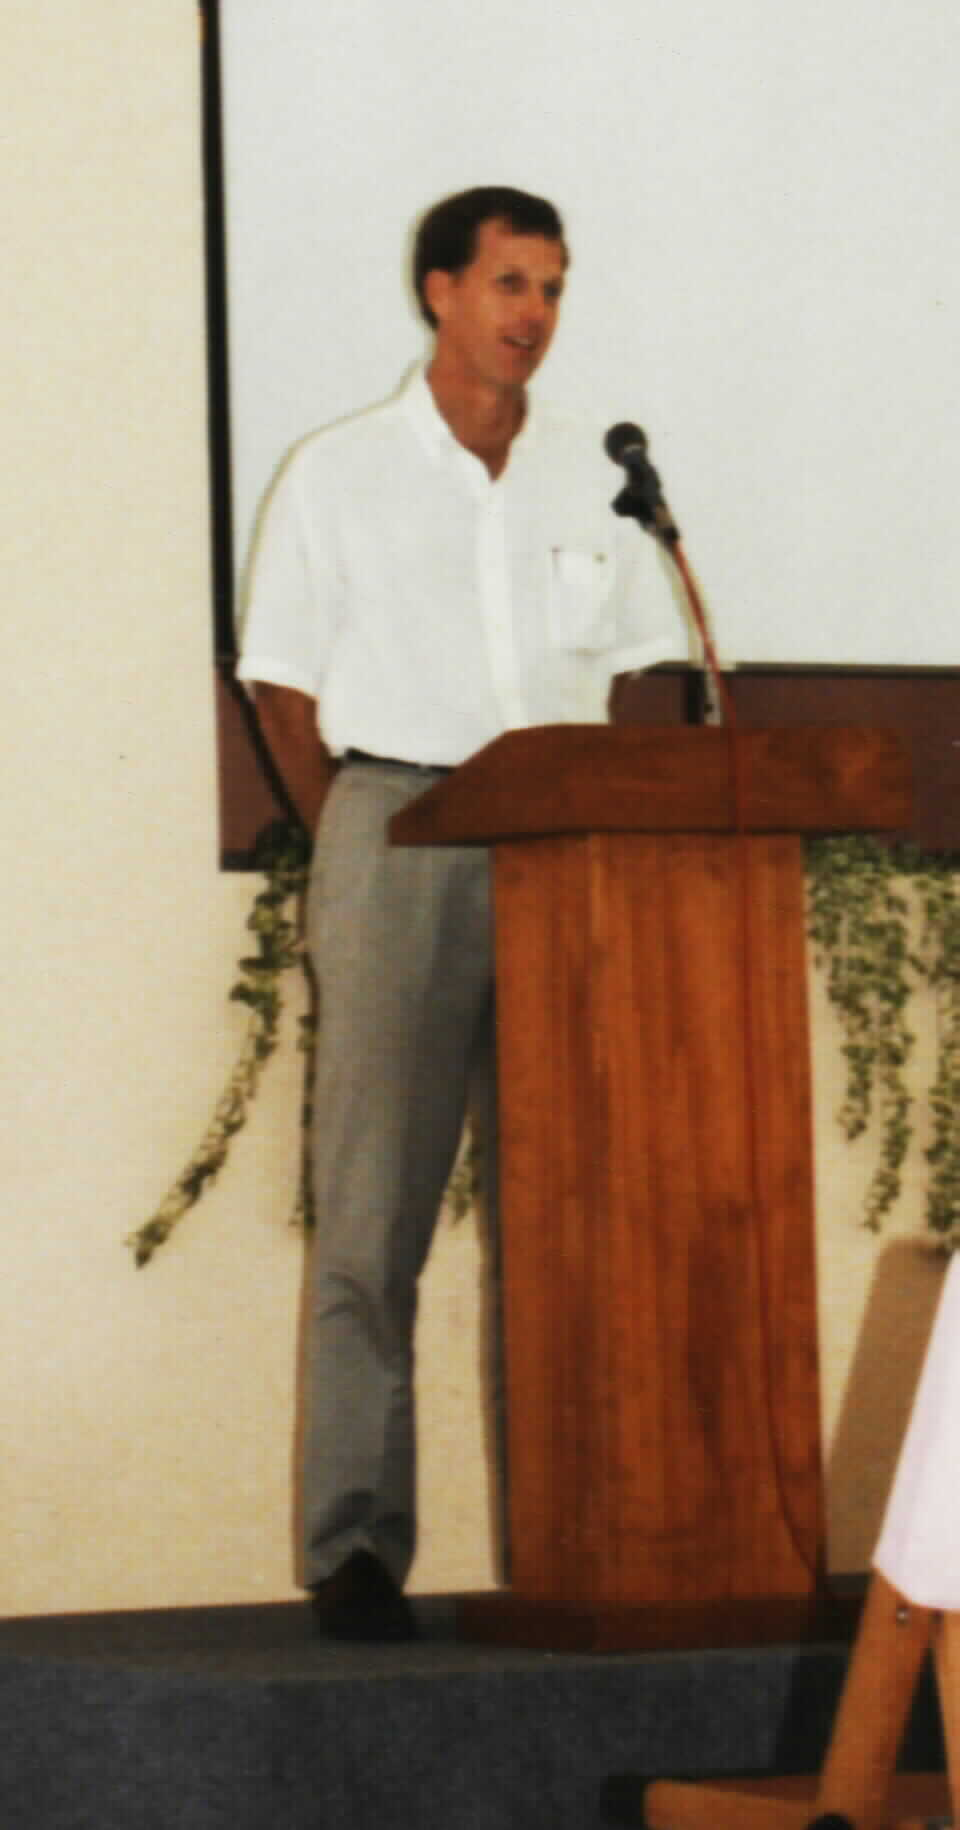 Kelly's giving a sermon at Bedok church in S'pore yr. 1998